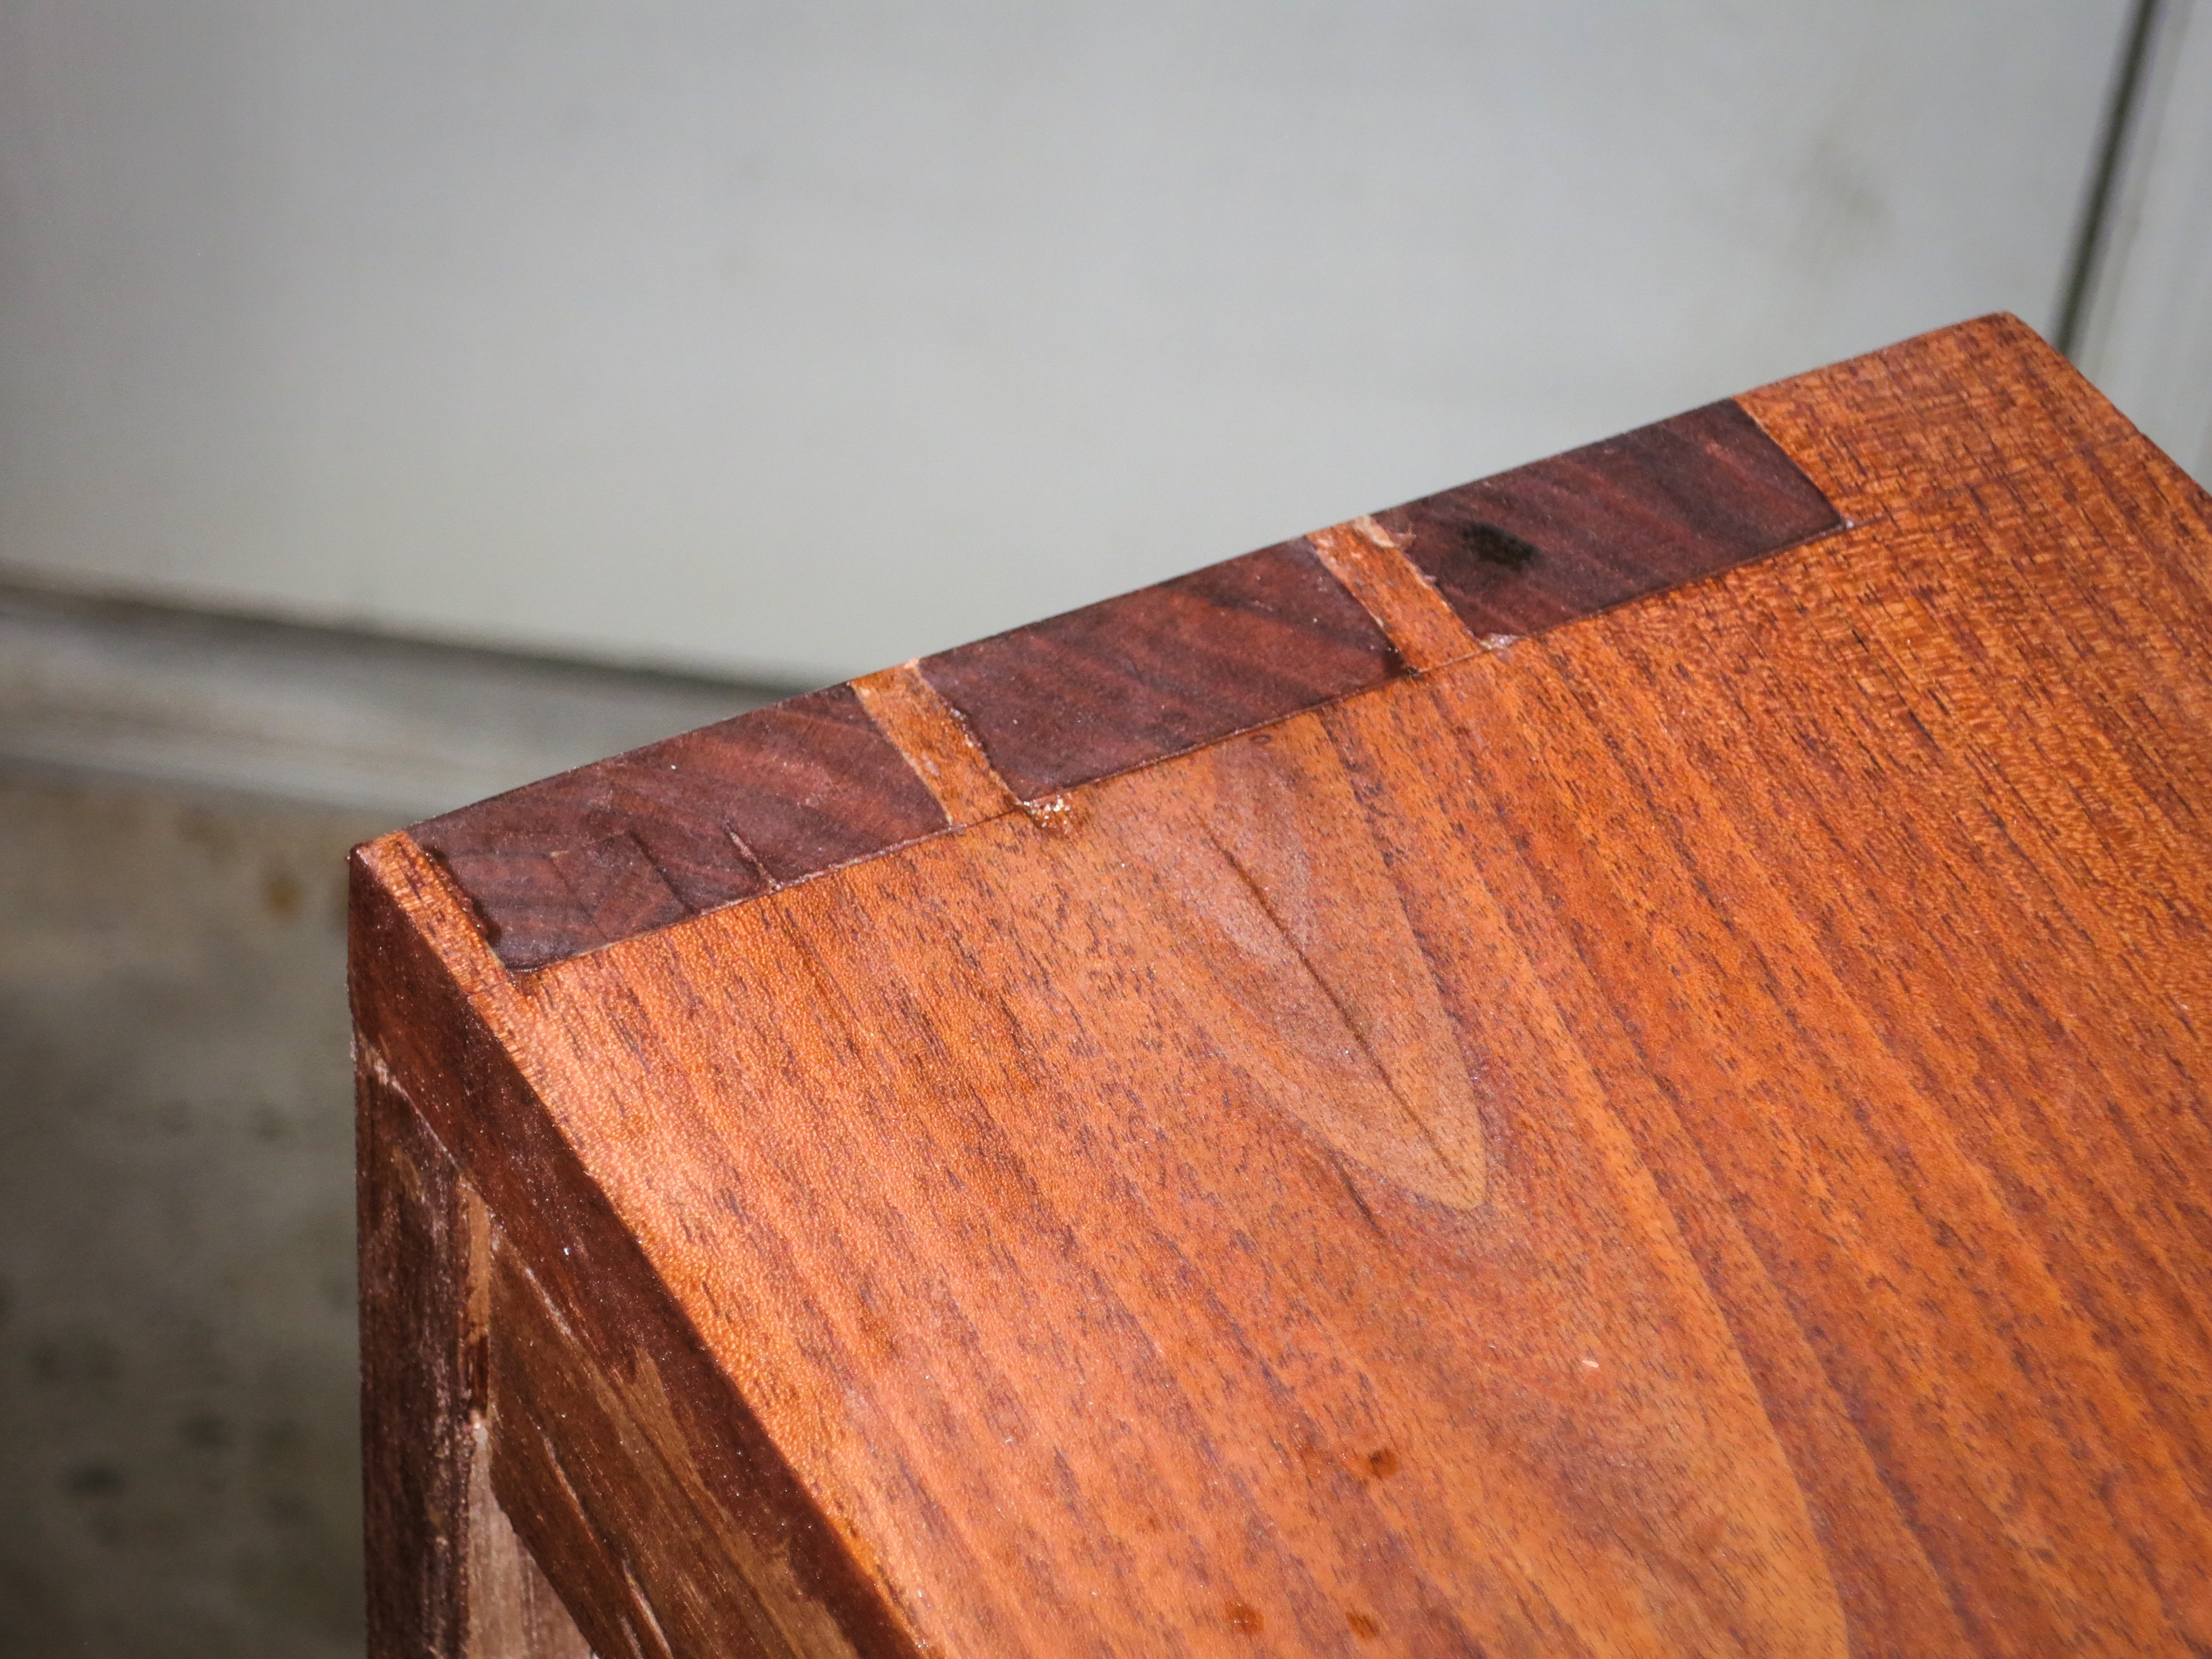 woodcraft woodworking classes